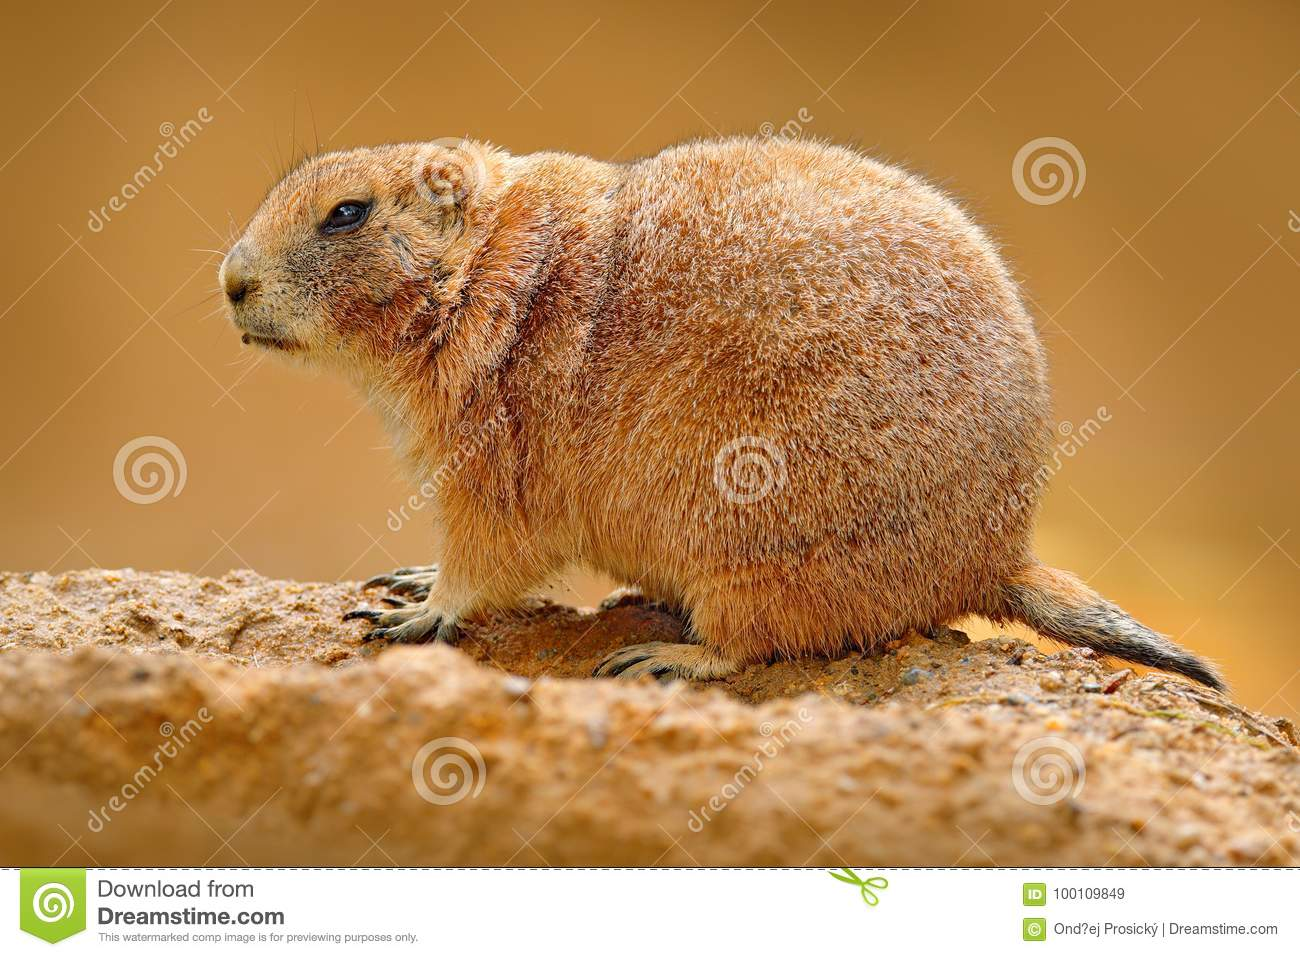 Black-tailed prairie dog, Cynomys ludovicianus, cute animal from rodent of family Sciuridae found in Great Plains, North America.